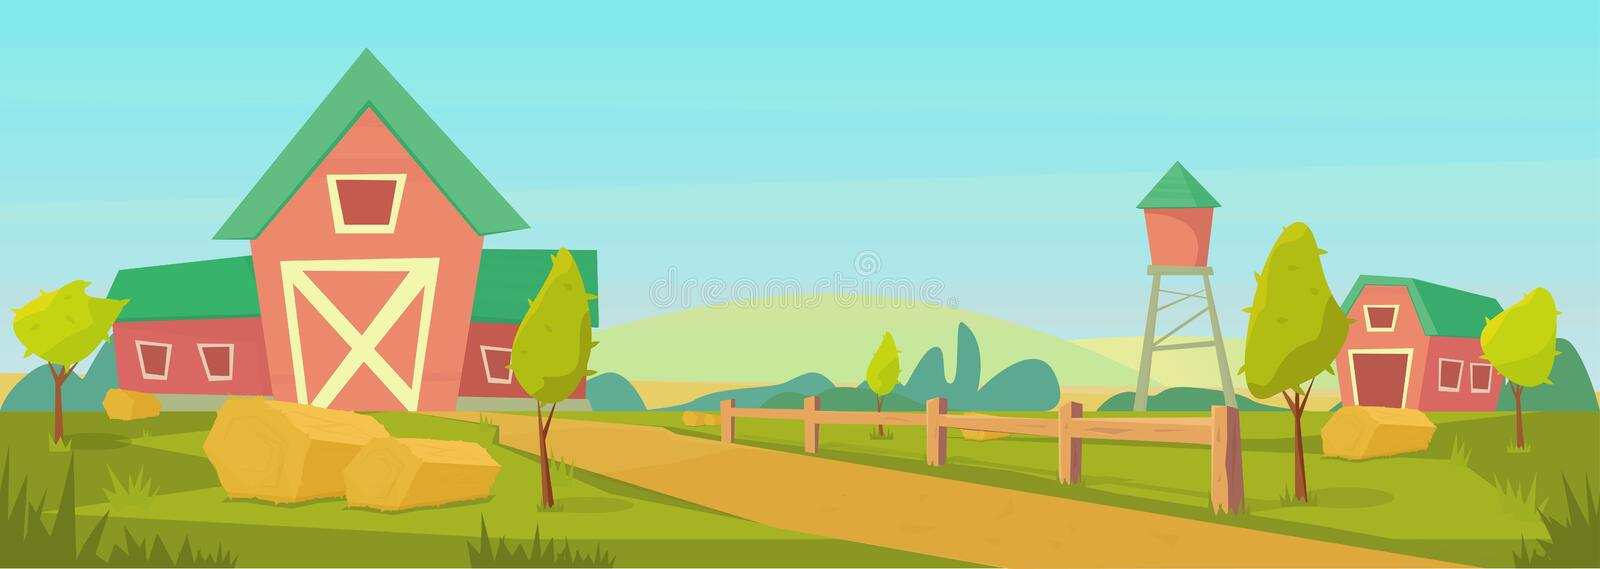 Agriculture. Farm rural landscape with red barn, house and ranch, water tower and haystack. Vector flat illustration vector illustration